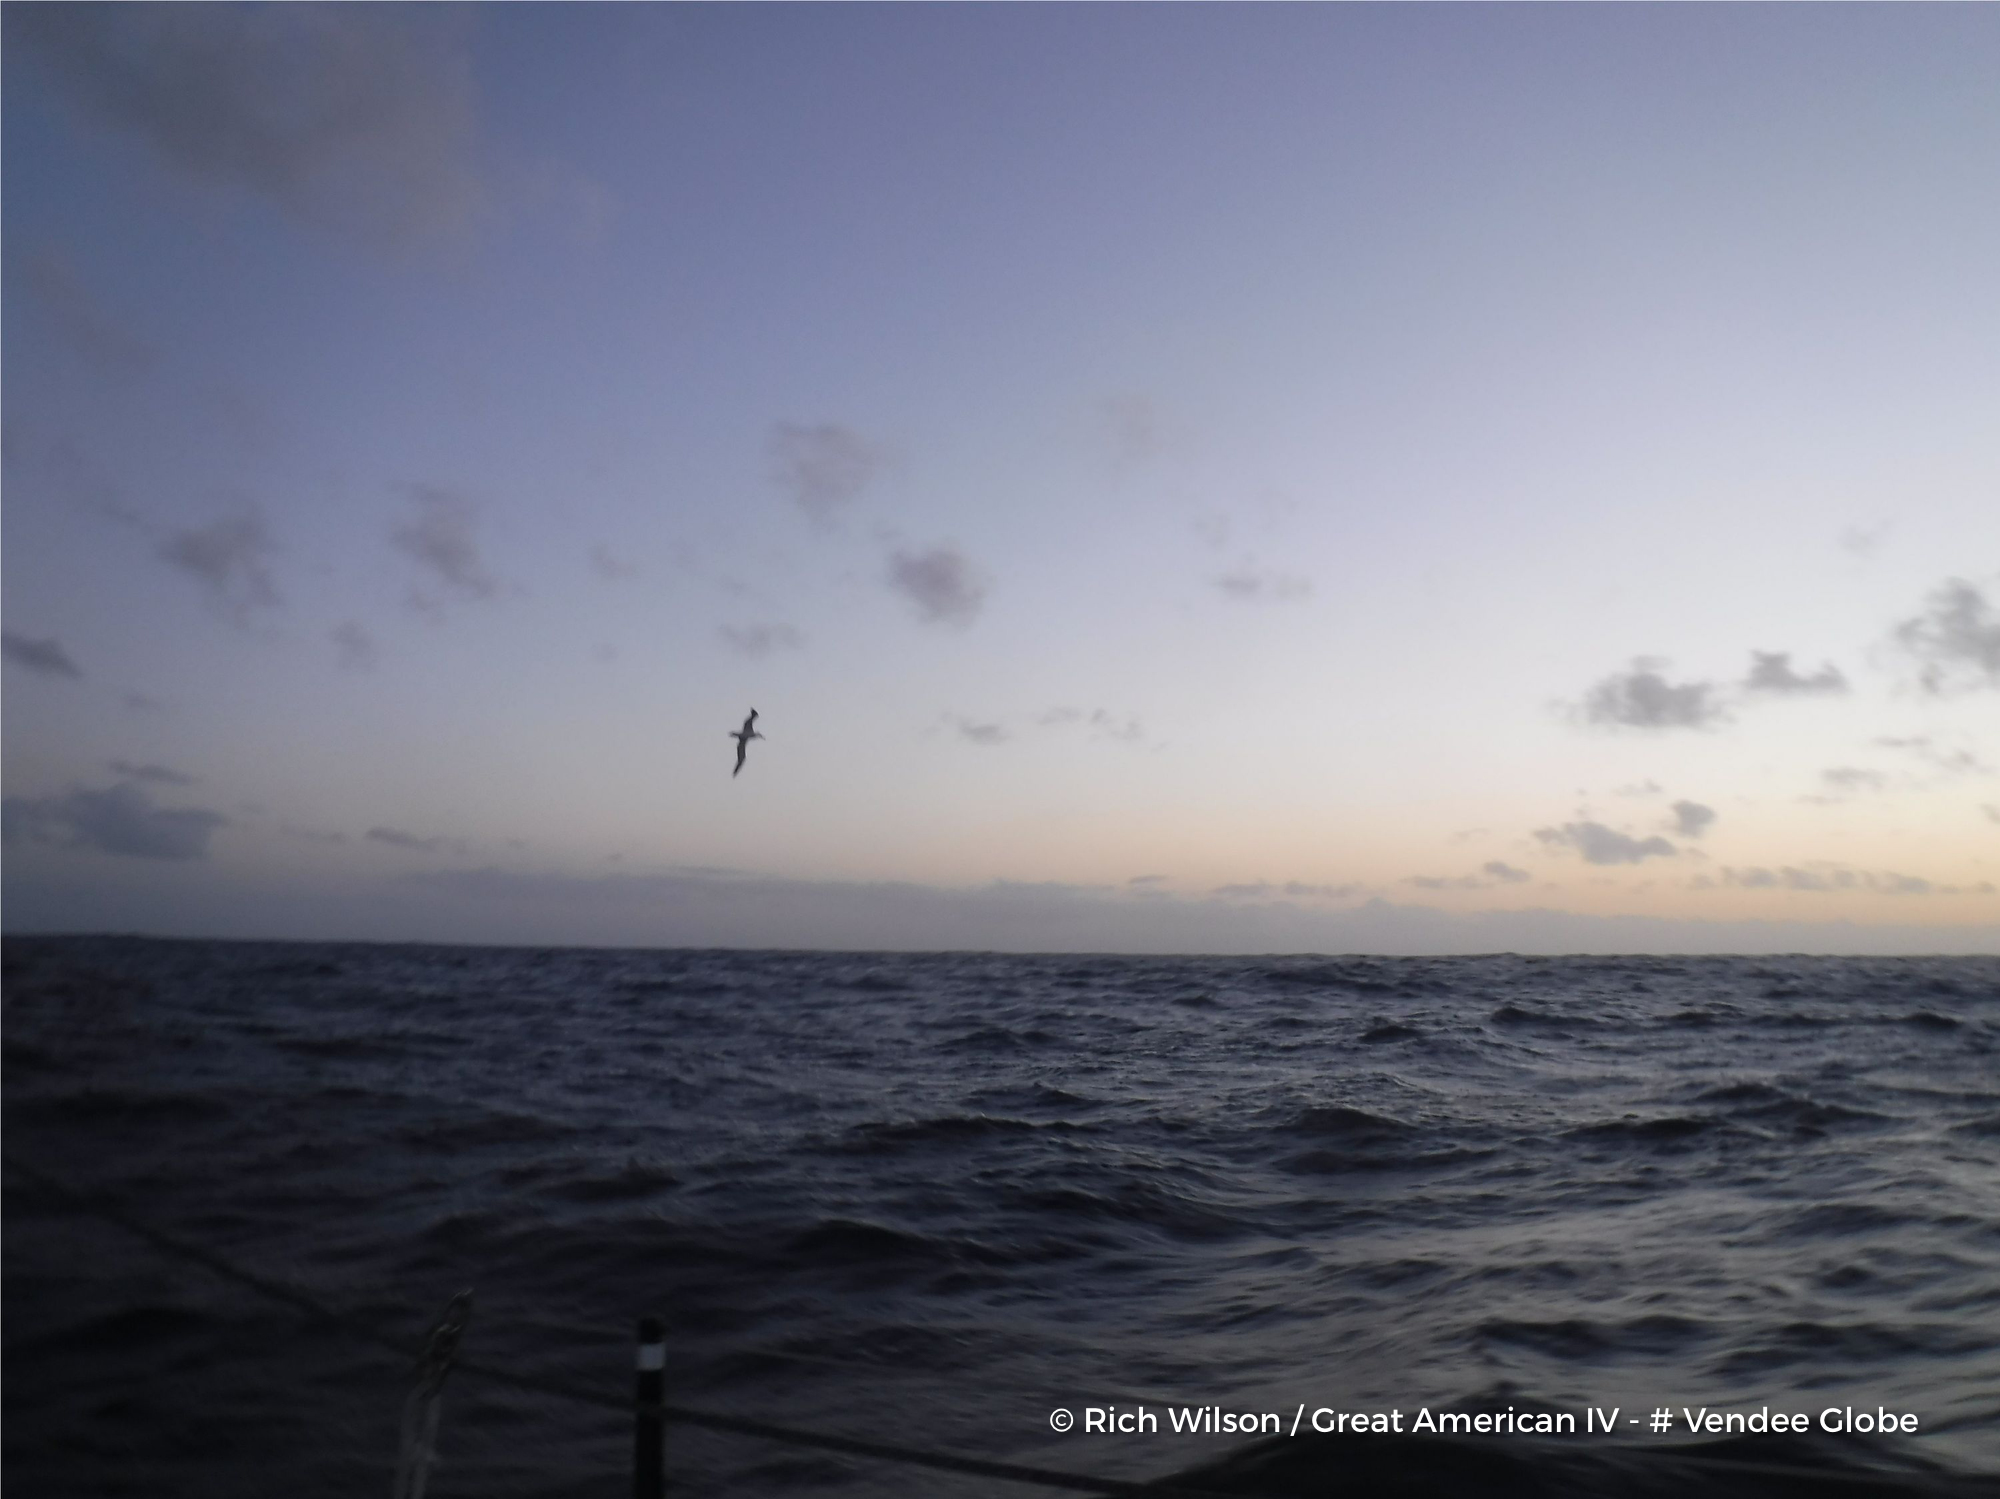 View from onboard during the Vendee Globe. Photo Rich Wilson/Great American IV.